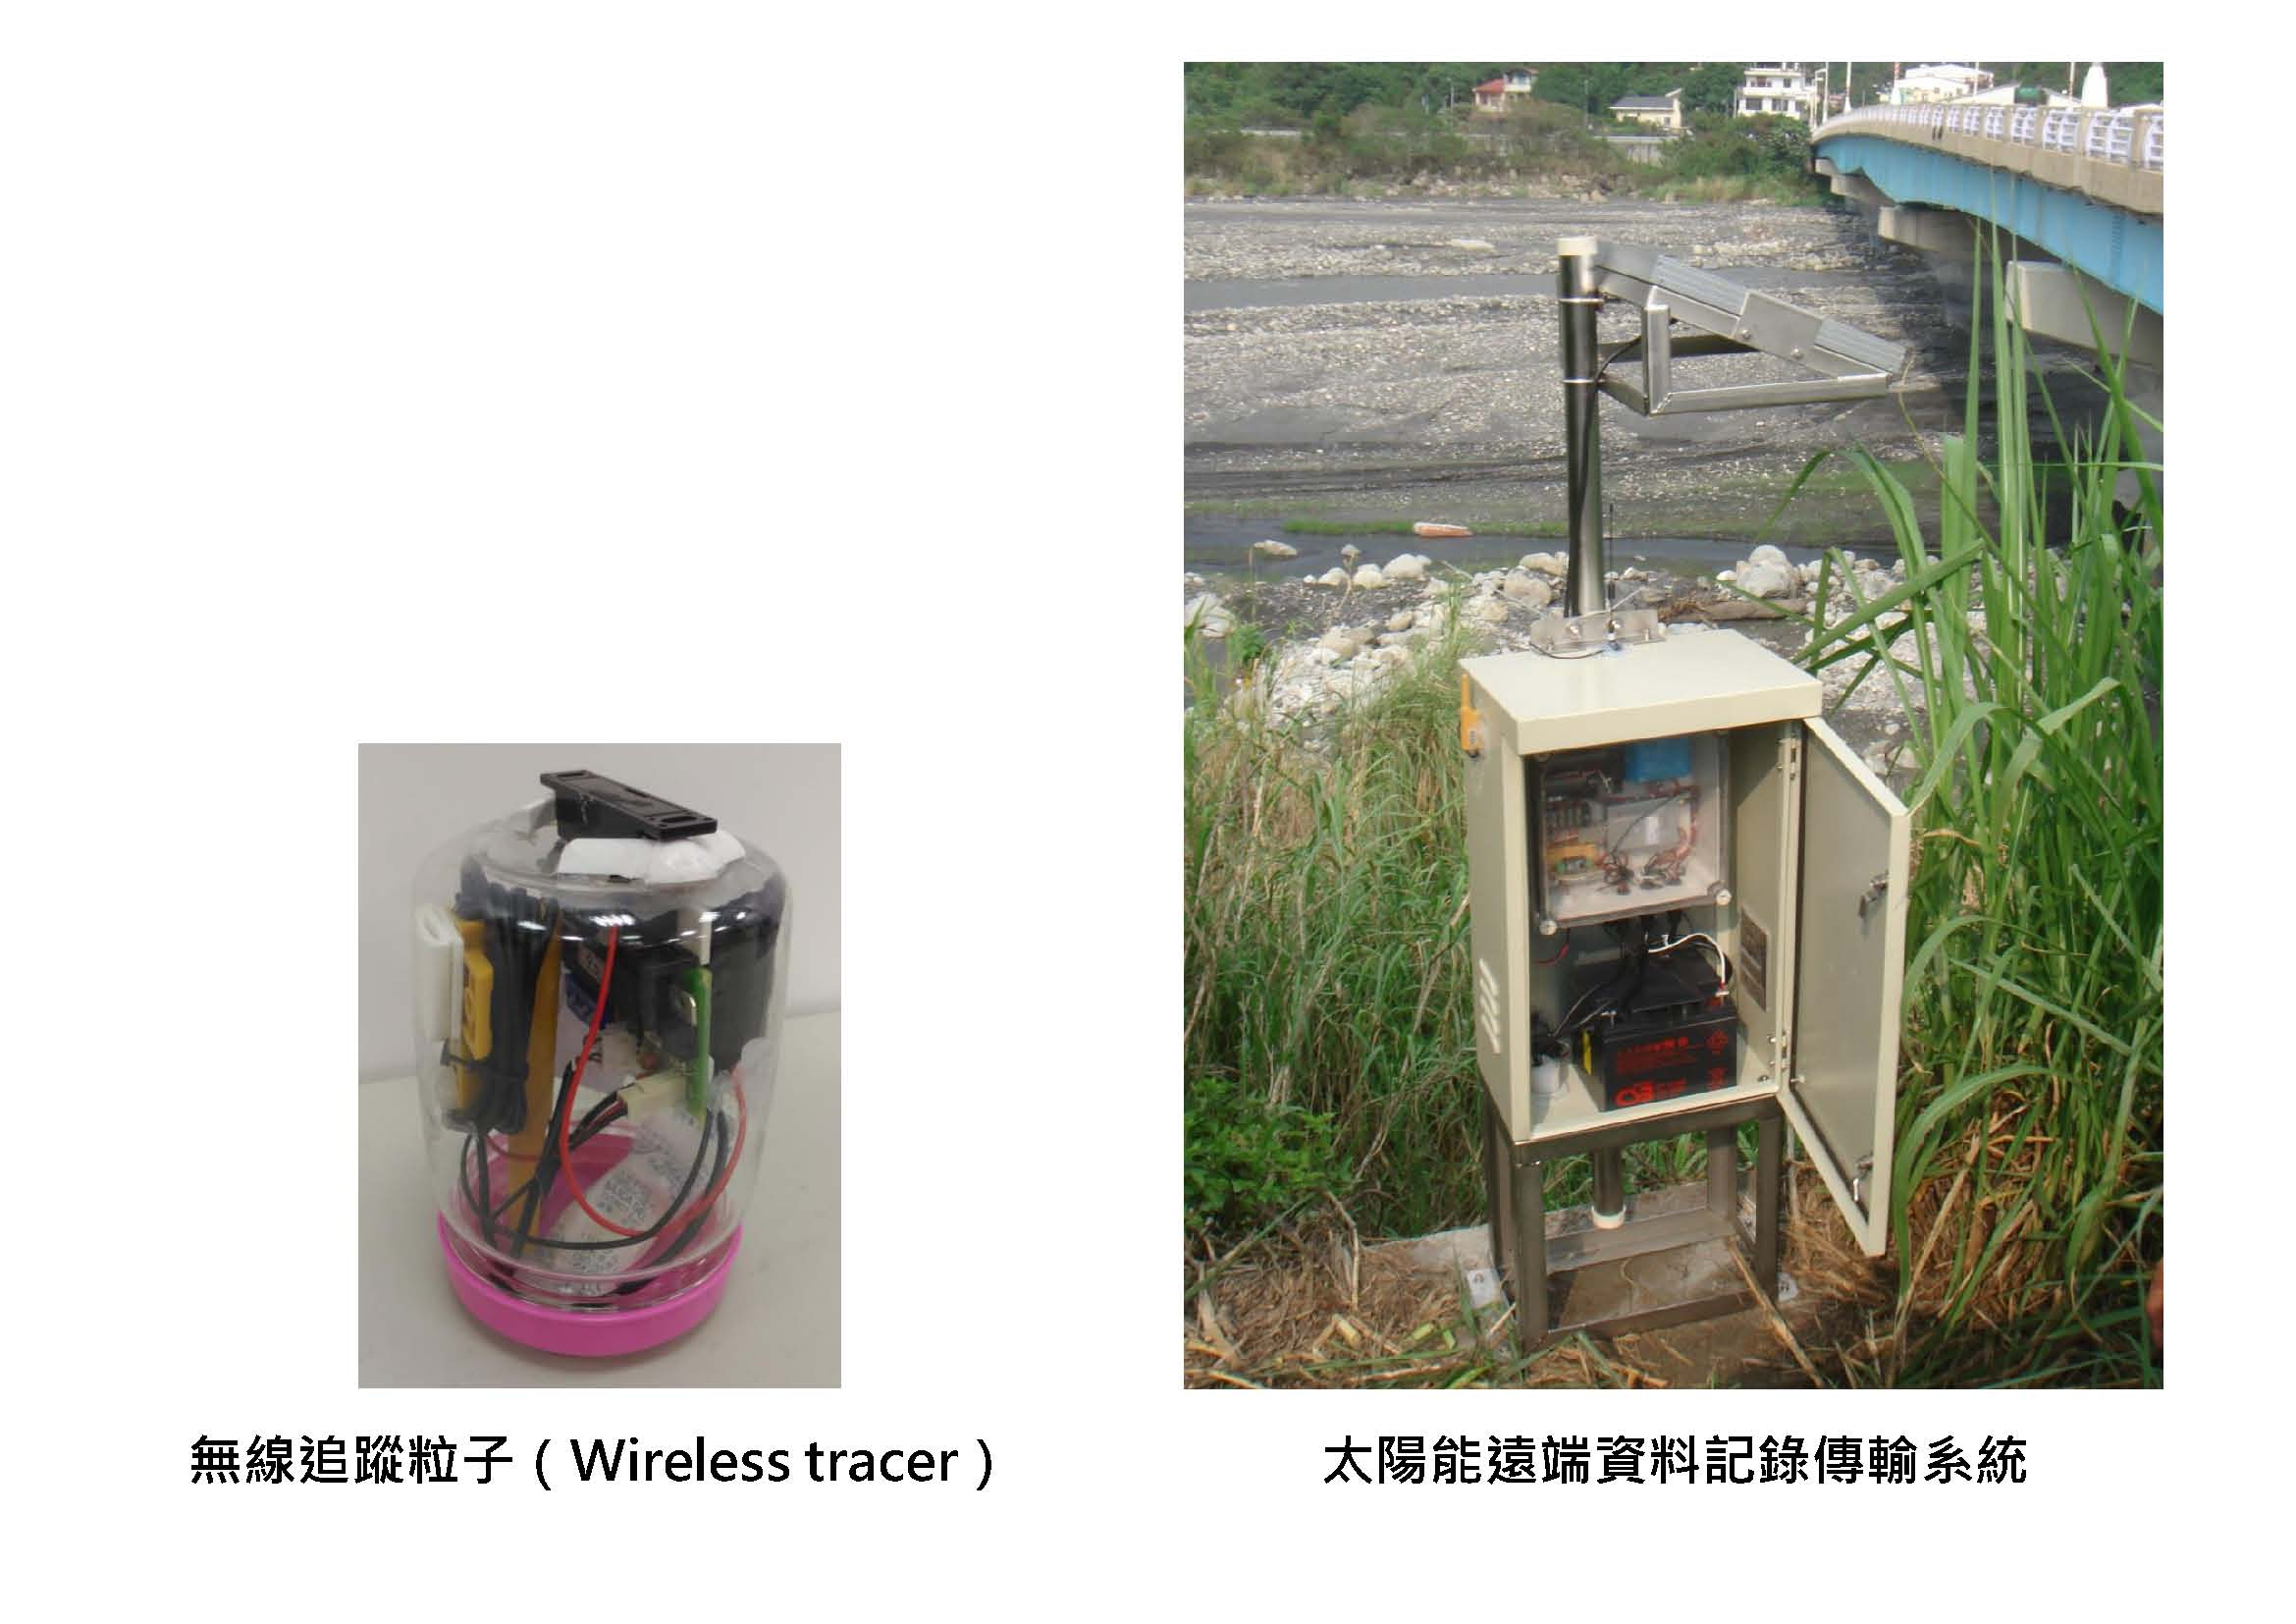 Wireless Tracer (float-out device)